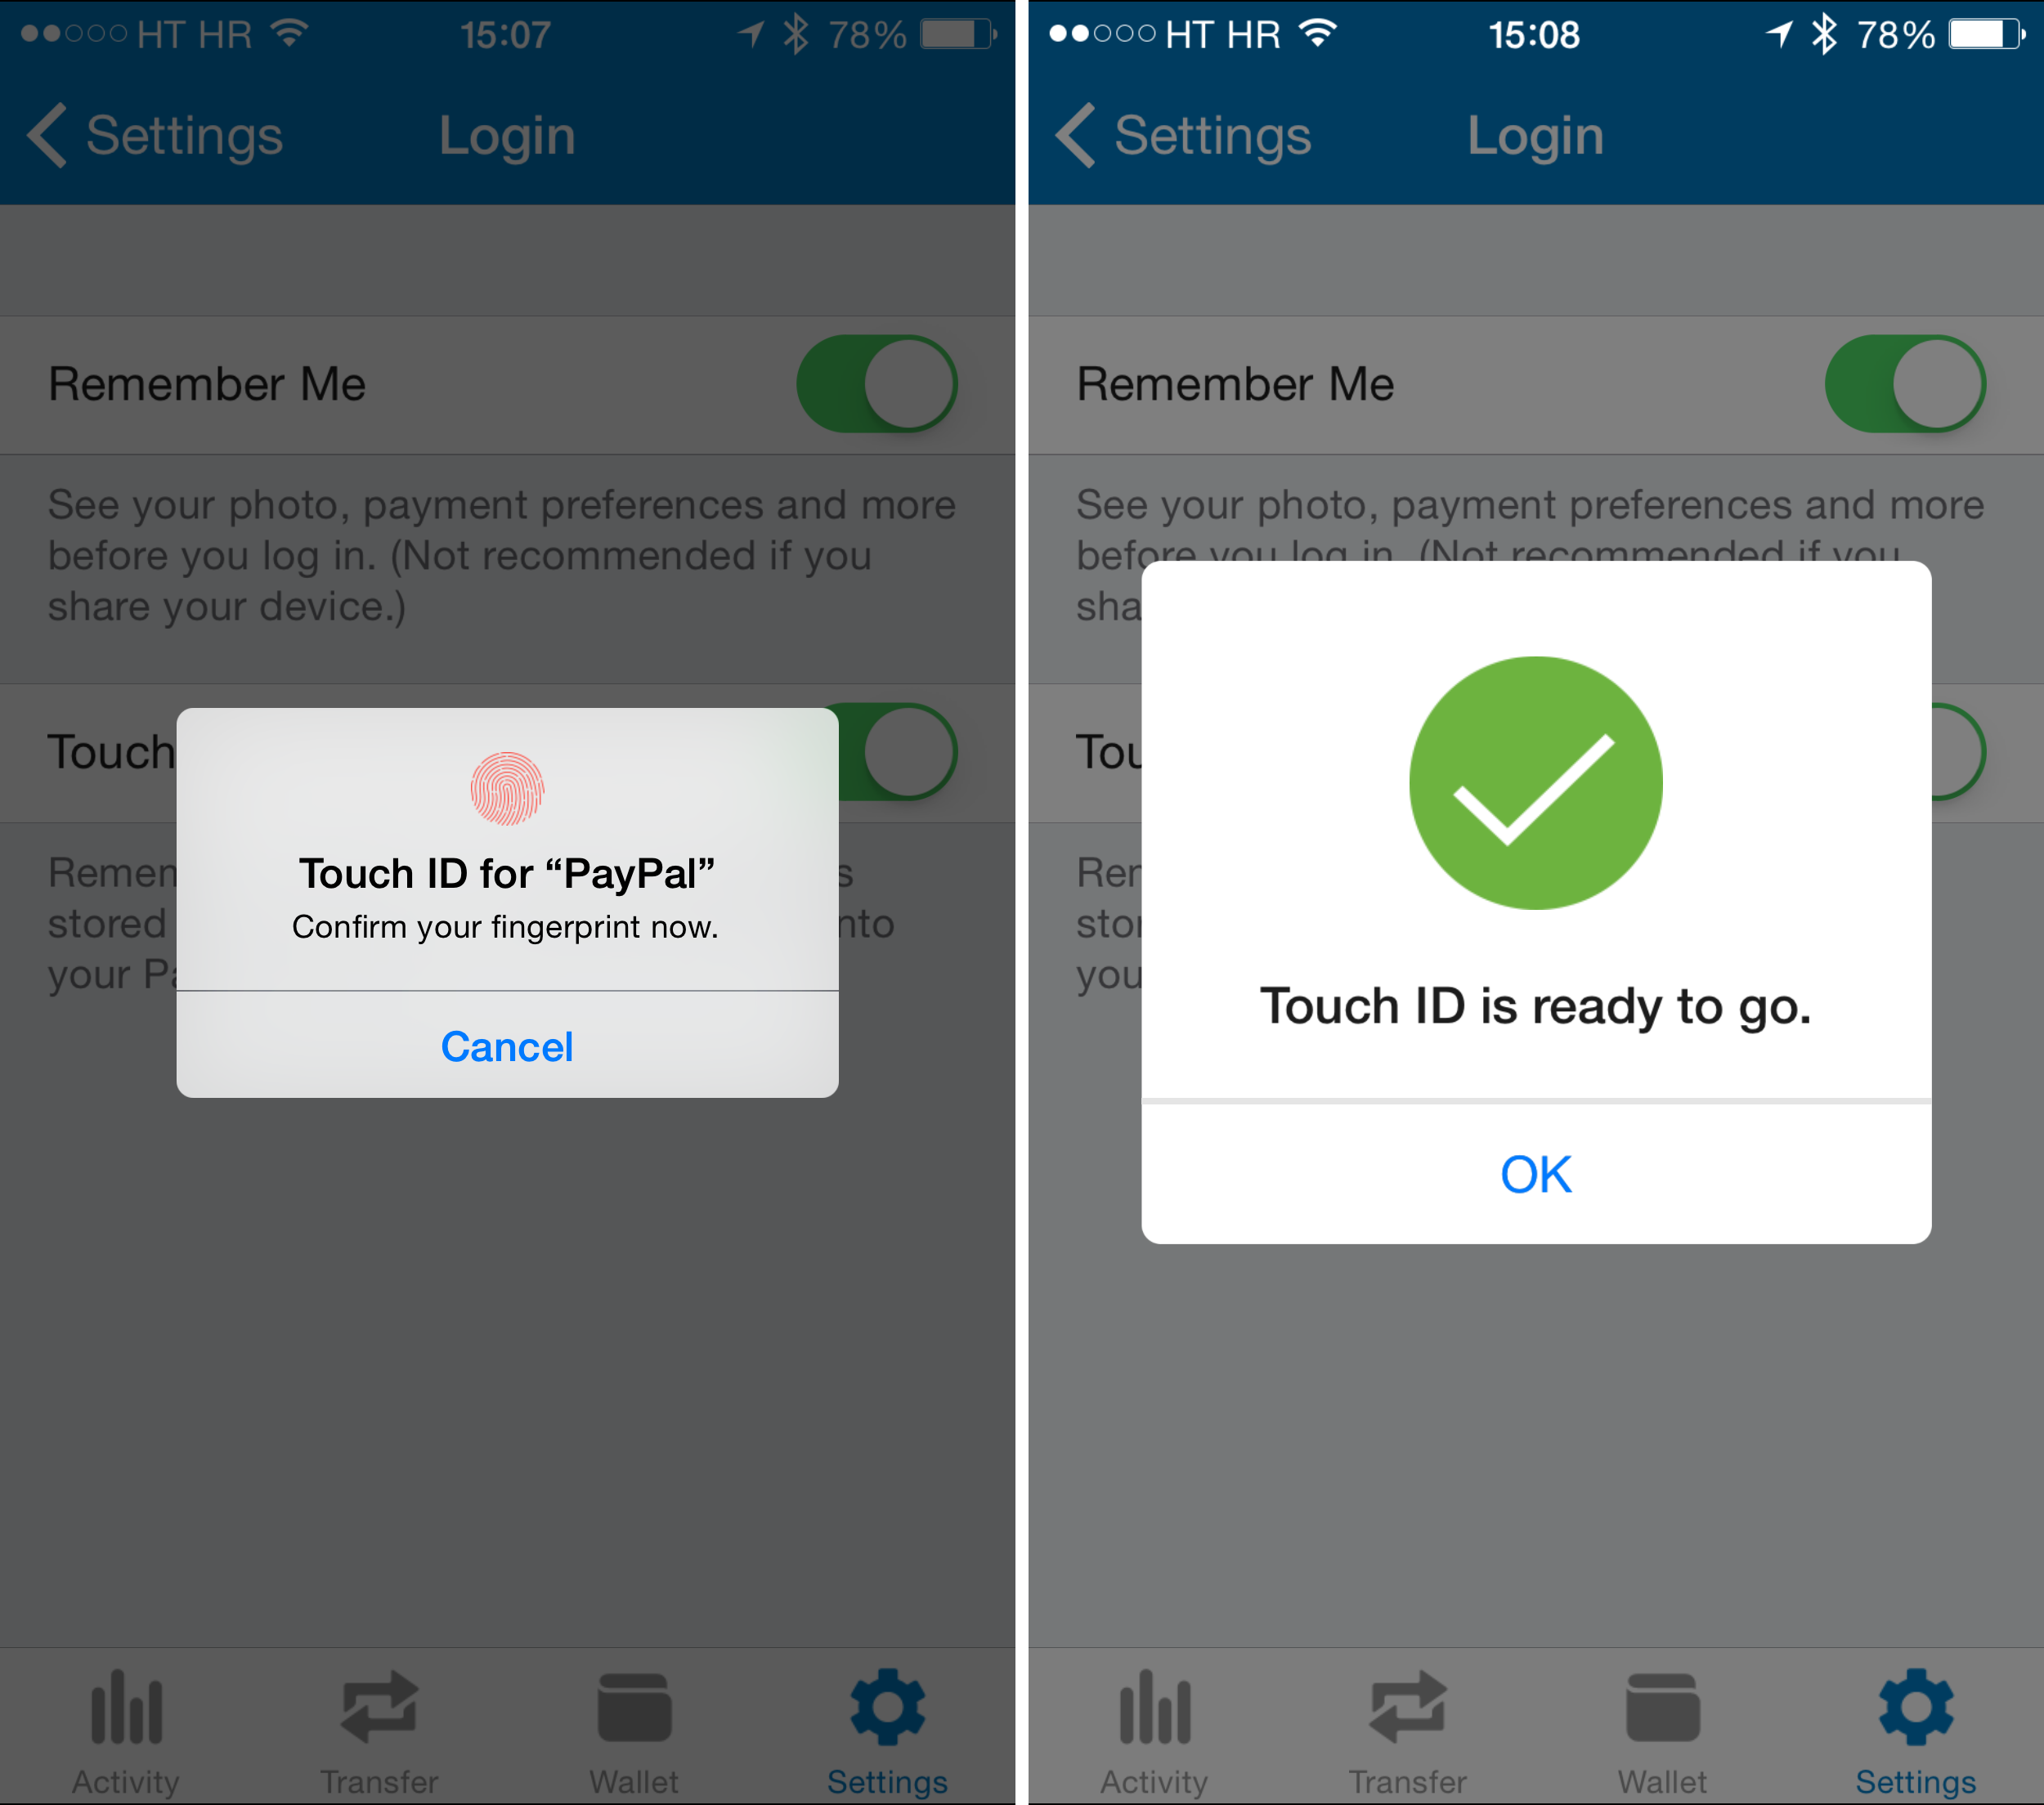 PayPal - 5.11.5 - iOS - Touch ID